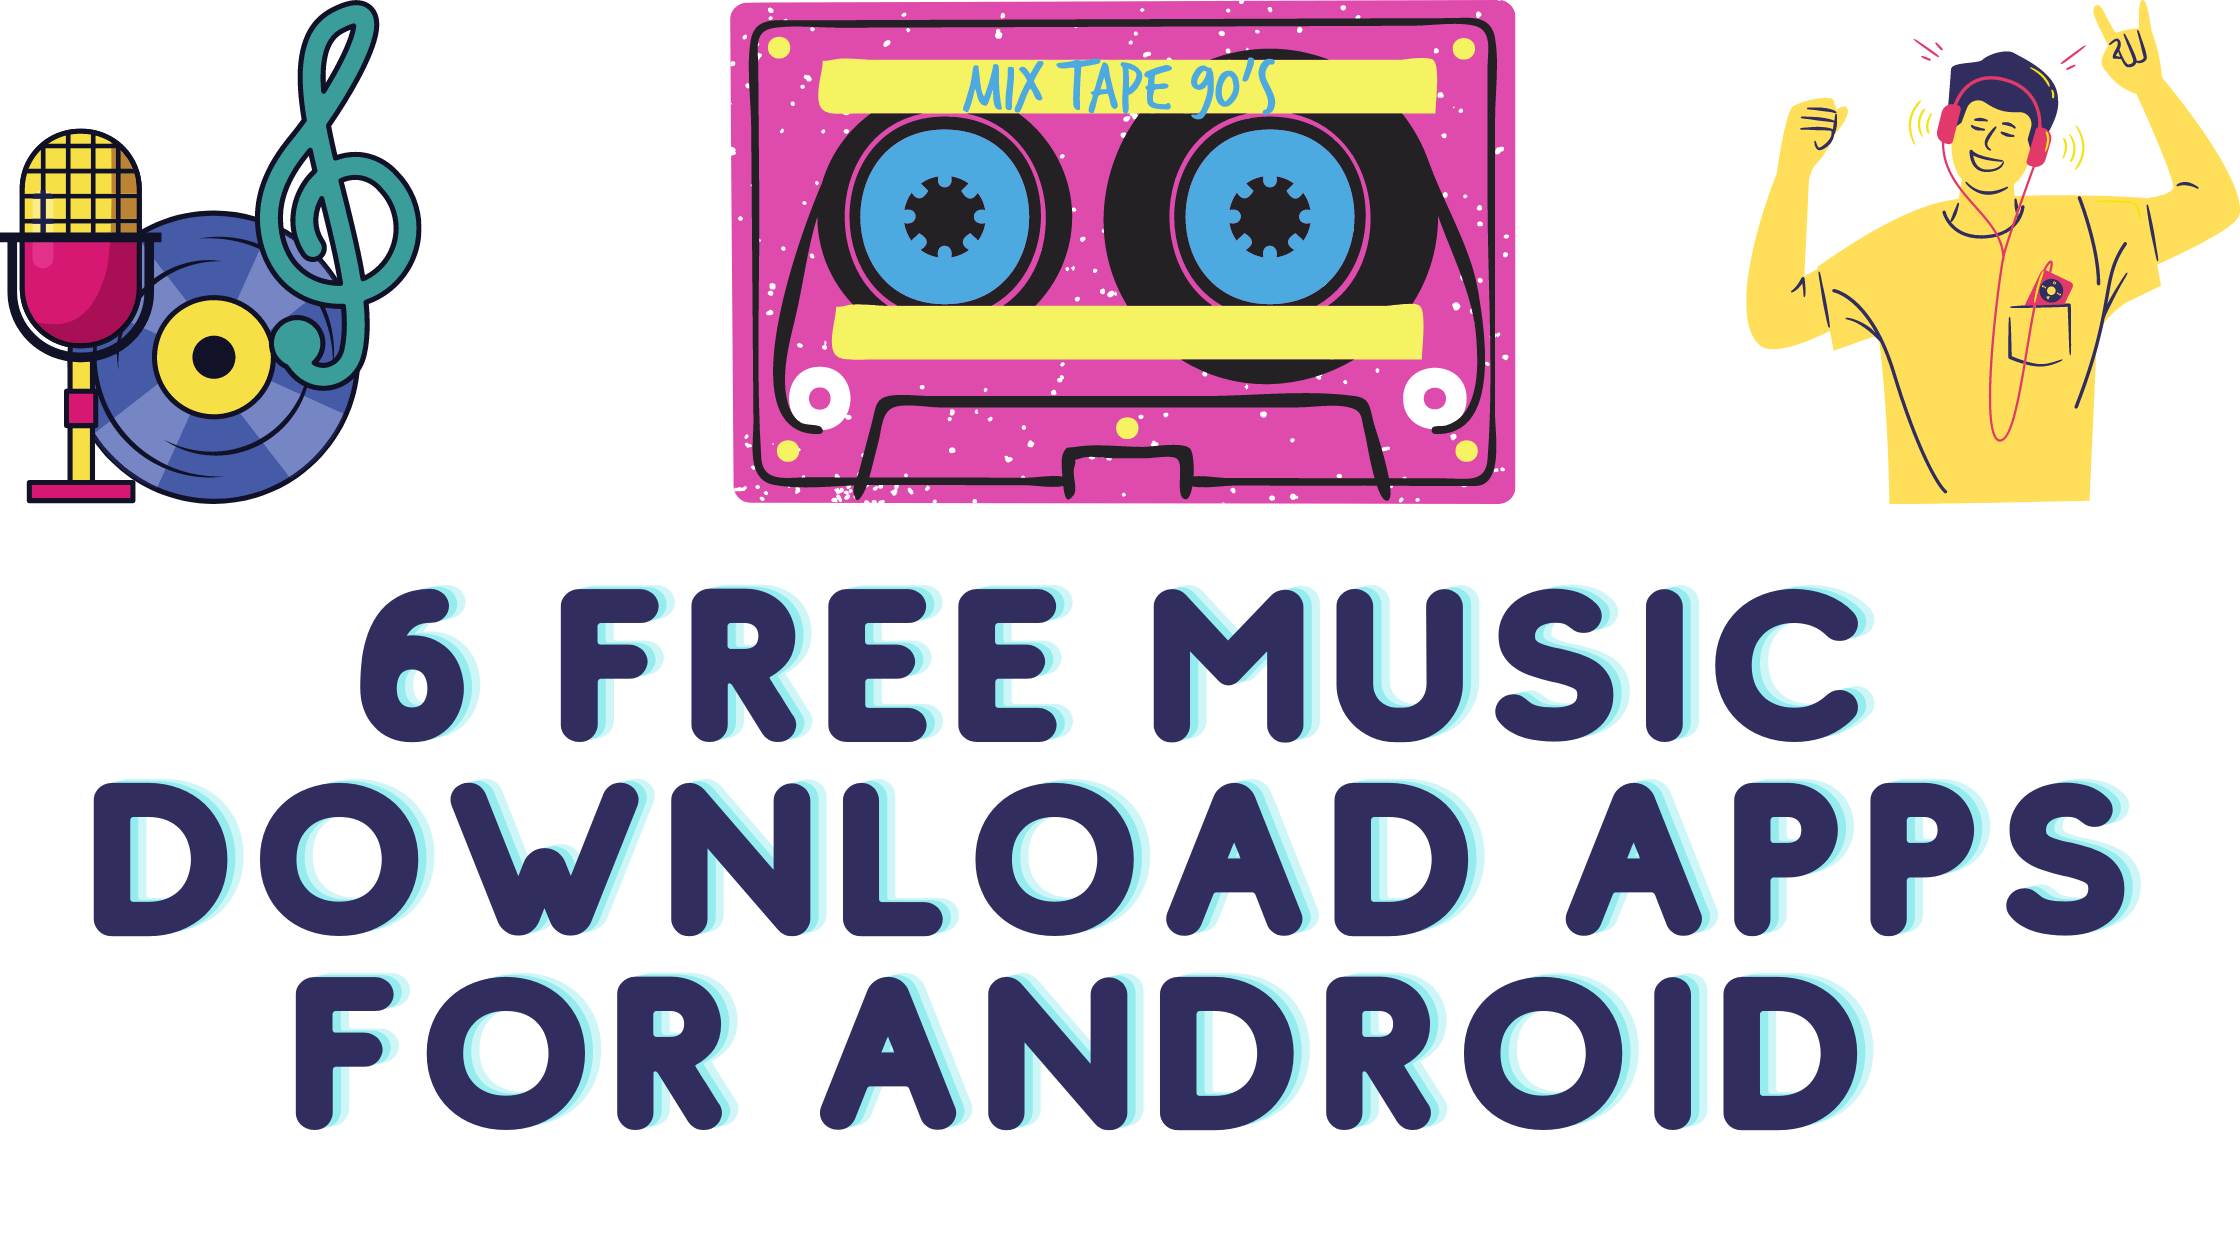 6 Best Free Music Download Apps for Android